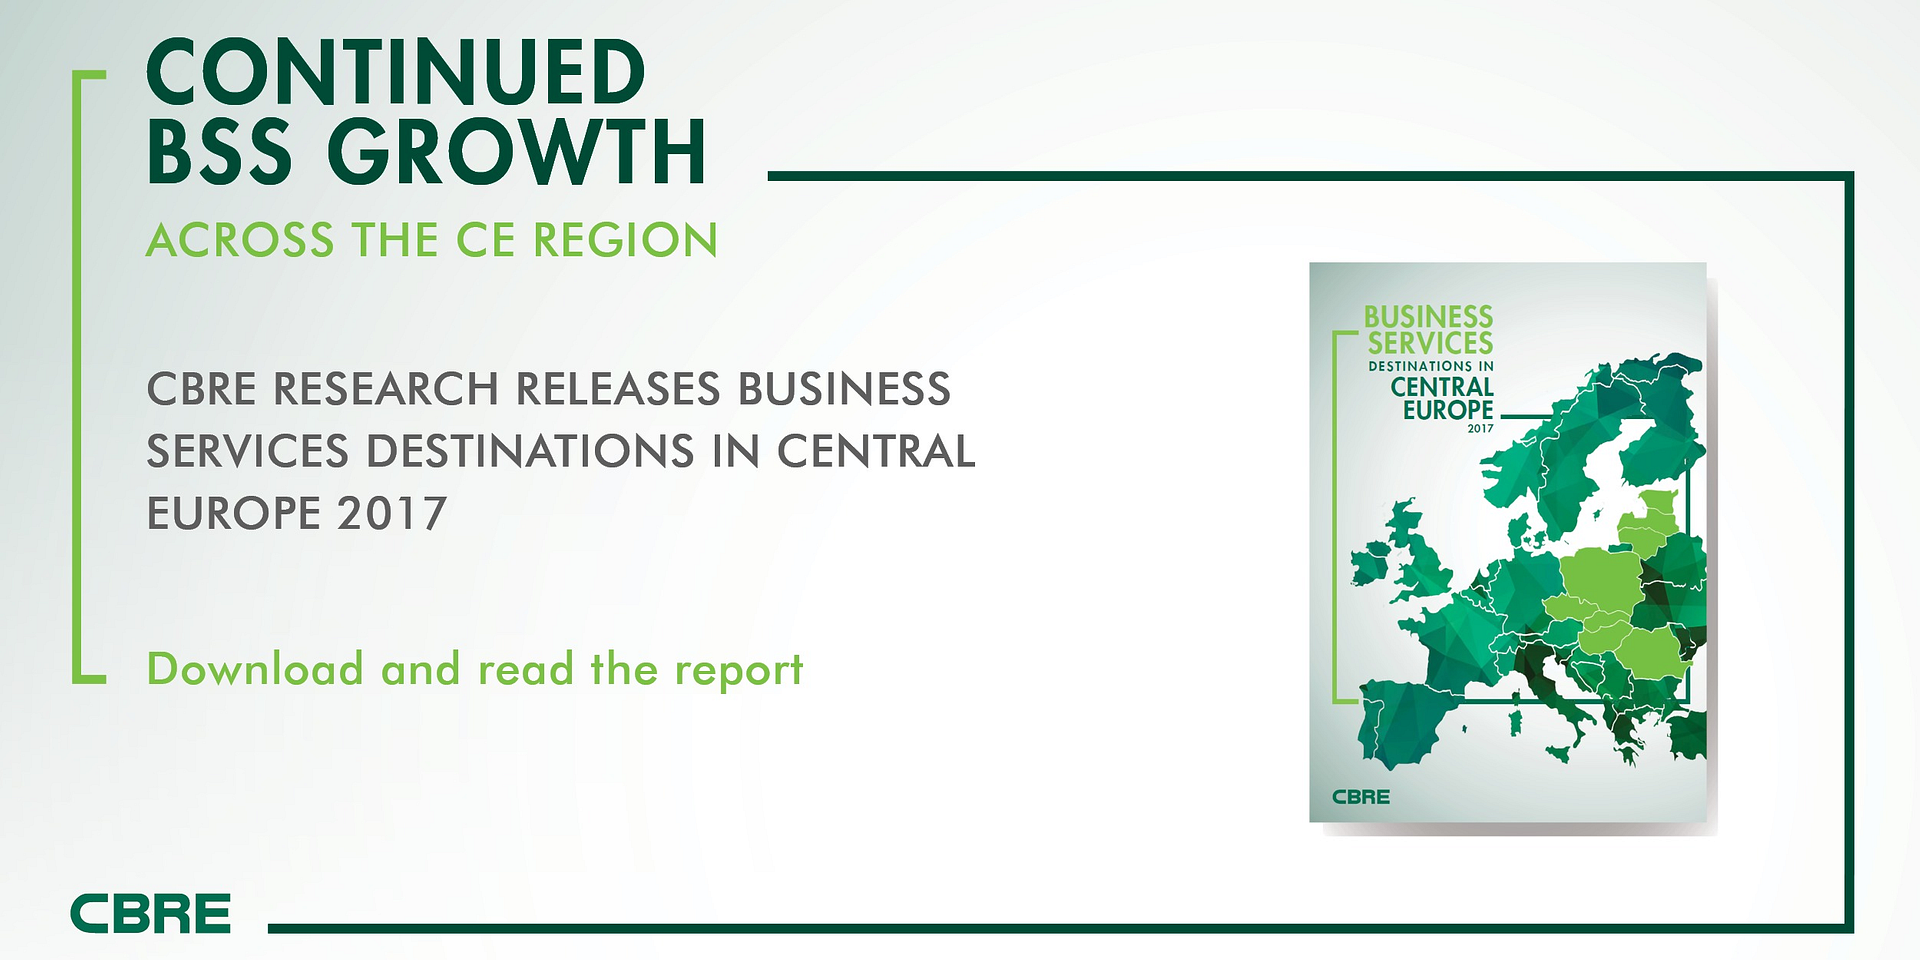 STRONG DEMAND FOR BUSINESS SERVICES IN CENTRAL EUROPE